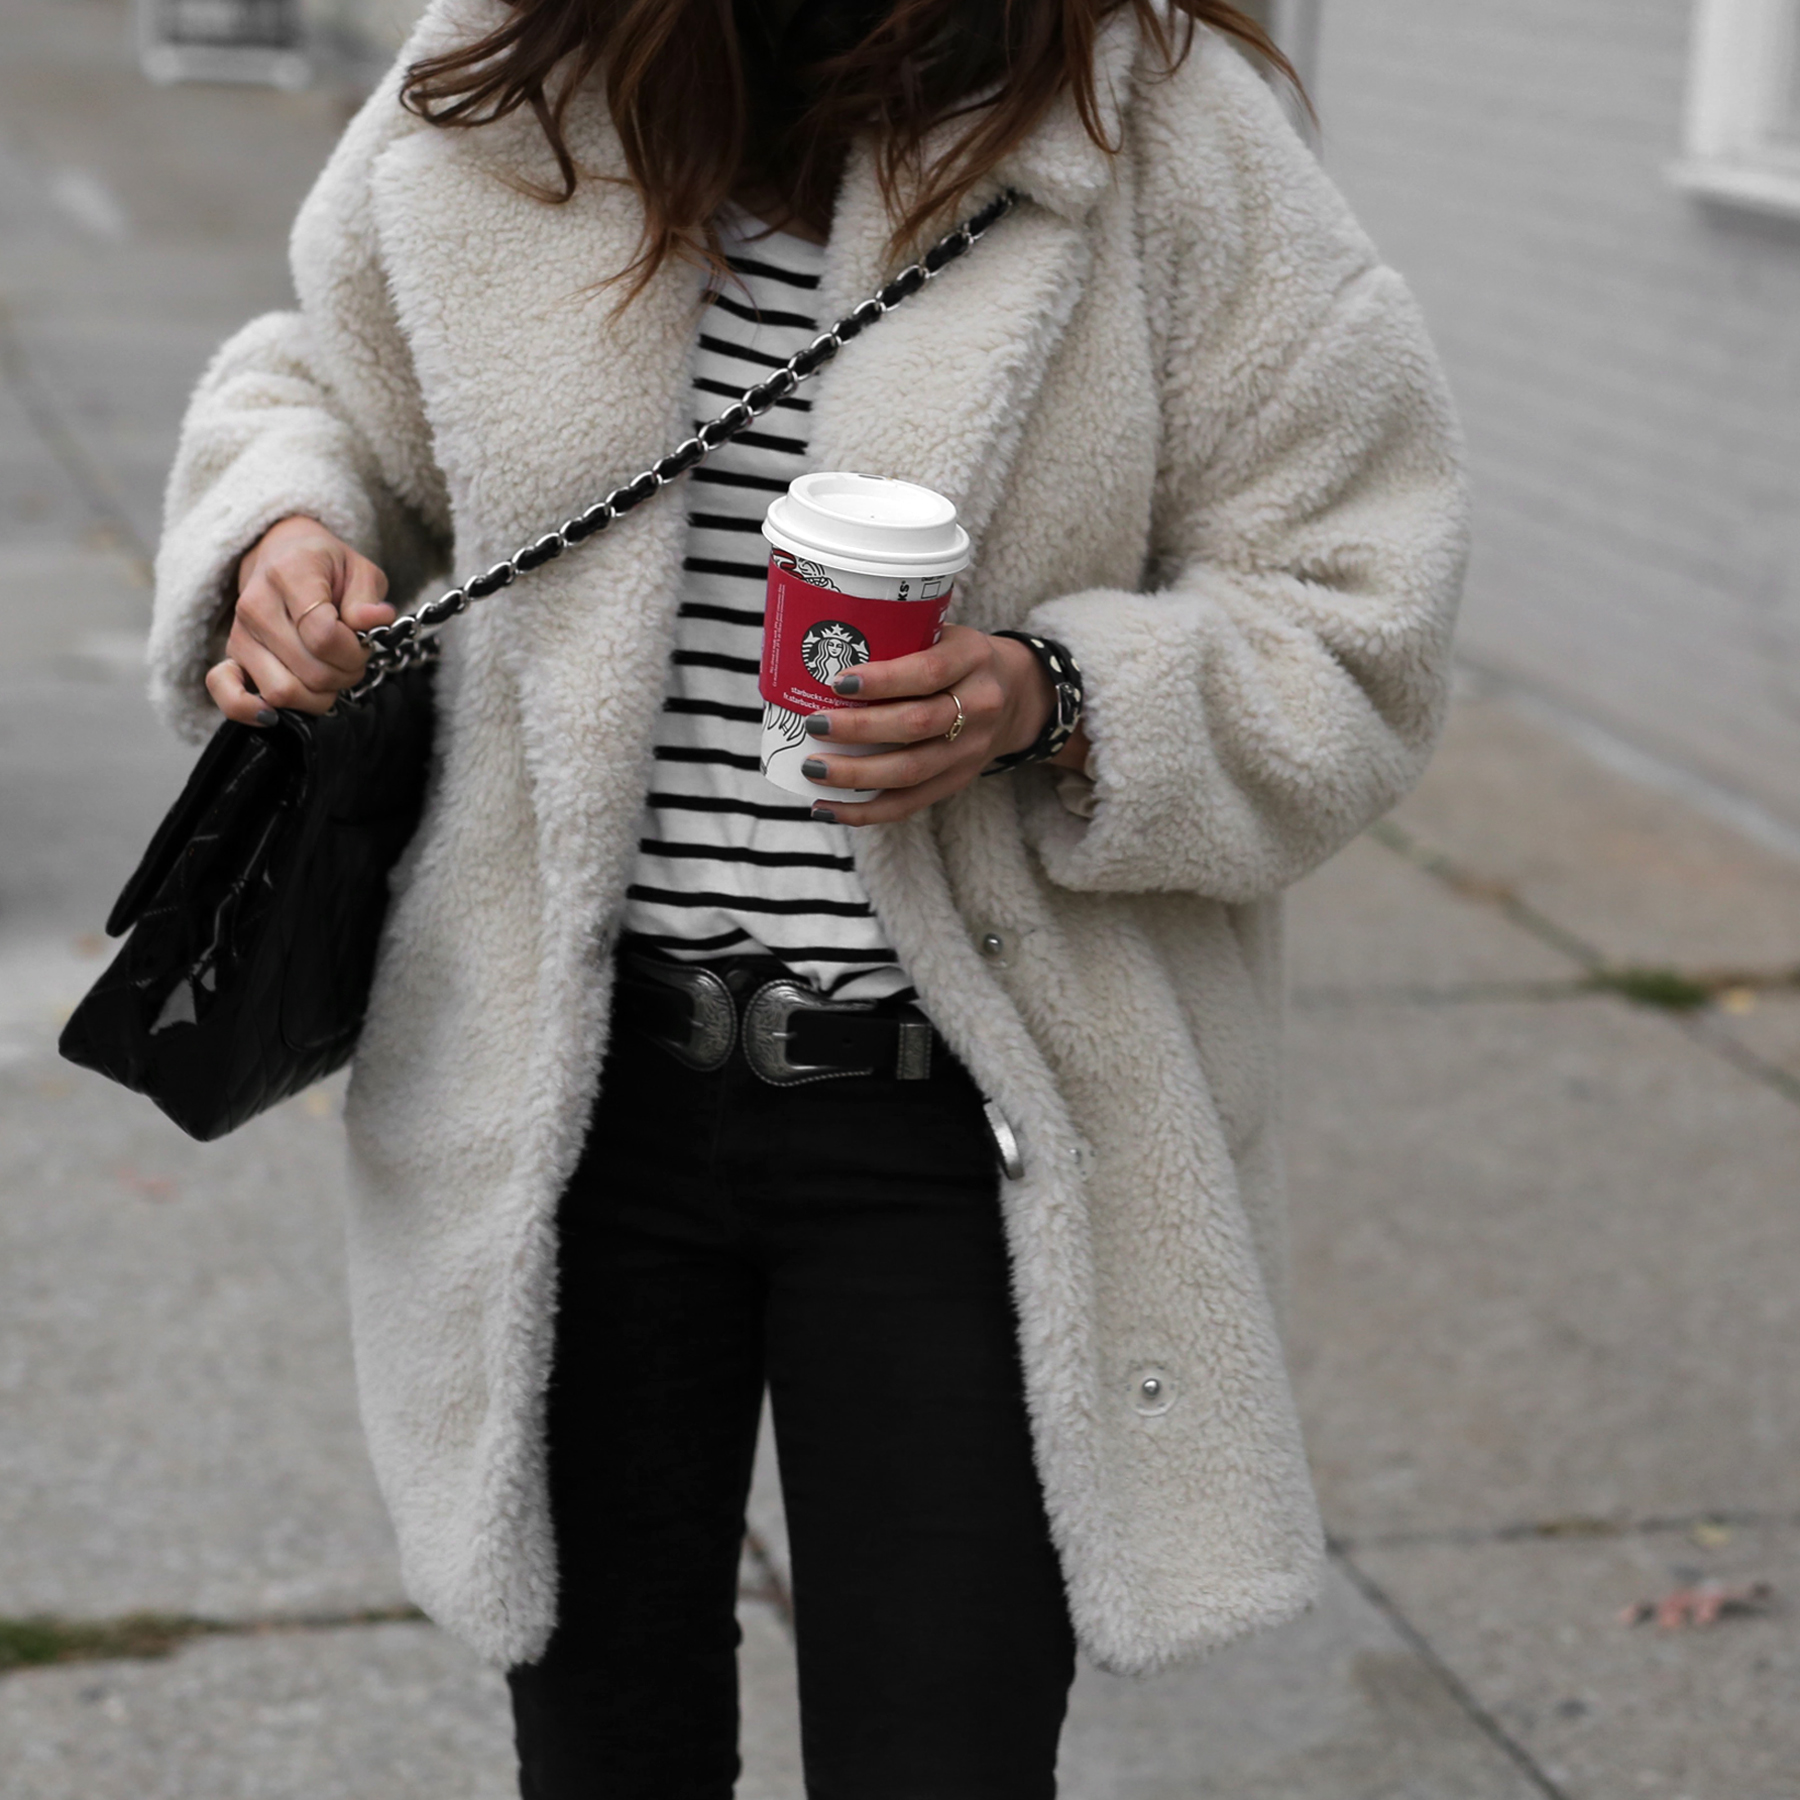 Fuzzy Topshop coat, striped top, black skinny jeans and patent leather Chanel jumbo bag street style - rocker chic - parisian style - french style_2848.jpg